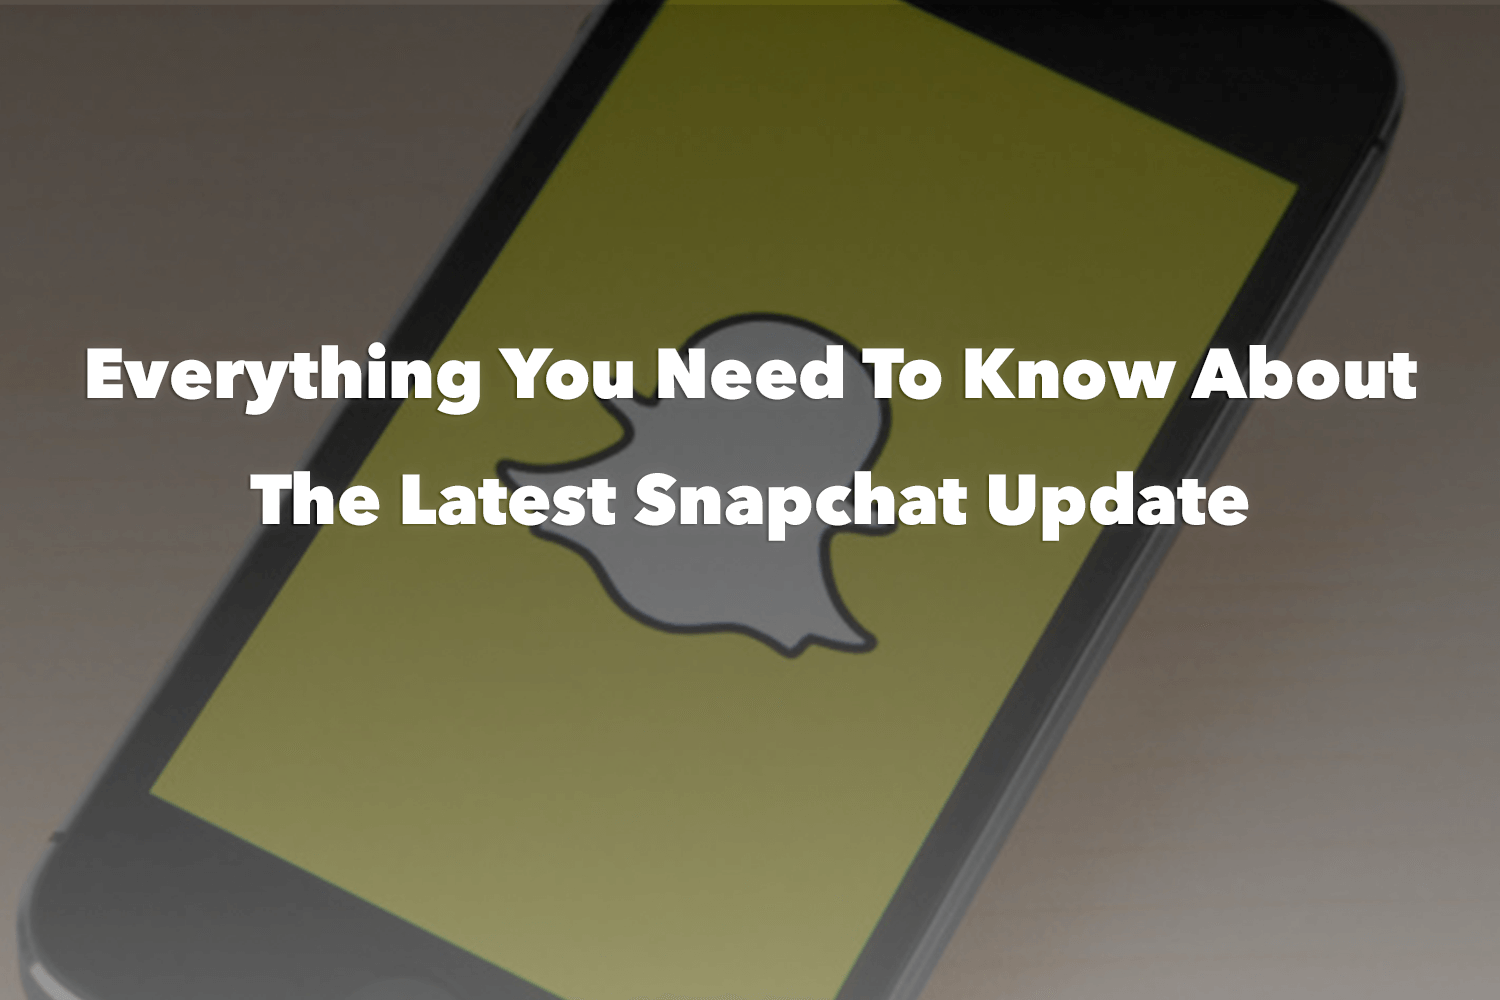 new-snapchat-update-includes-group-chat-scissors-paintbrush-shazam-banner.png